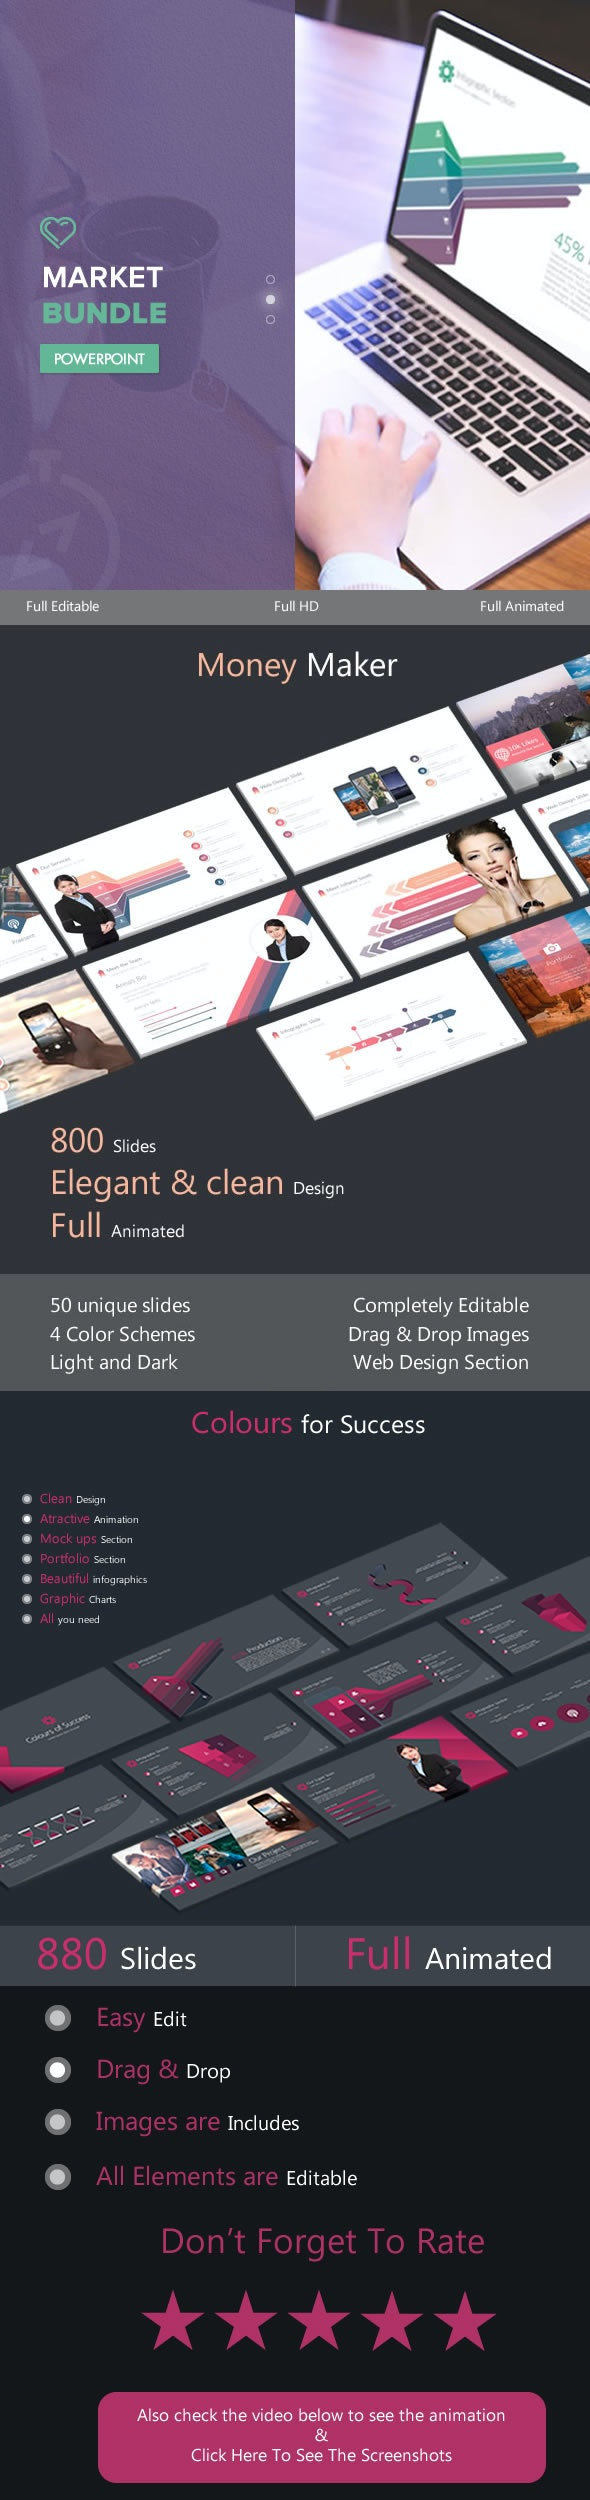 Market Bundle - PowerPoint Templates Presentation Templates